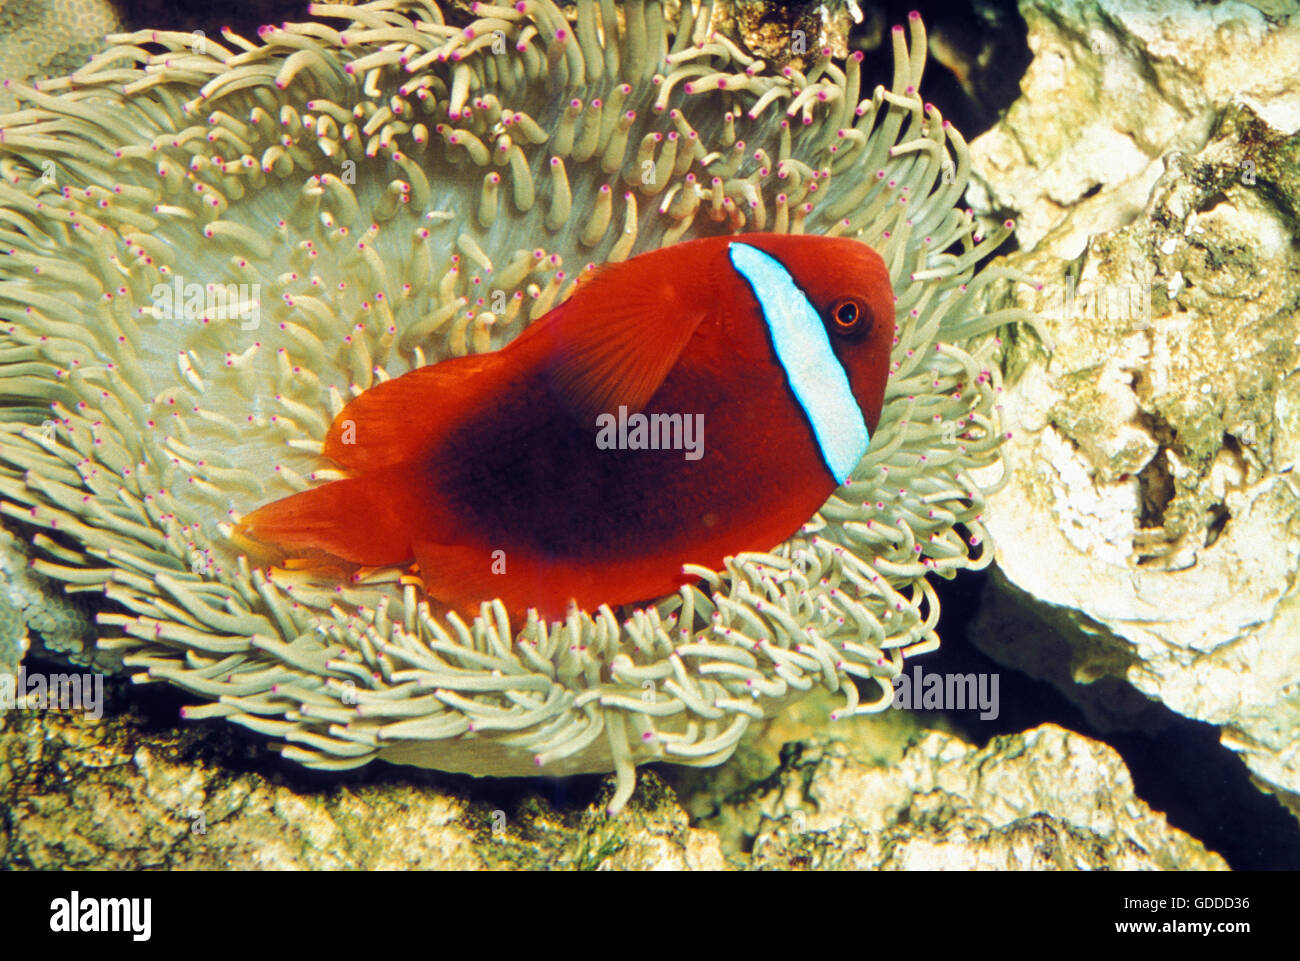 Tomato Clownfish, amphiprion frenatus, Adult in Anemone Stock Photo ...